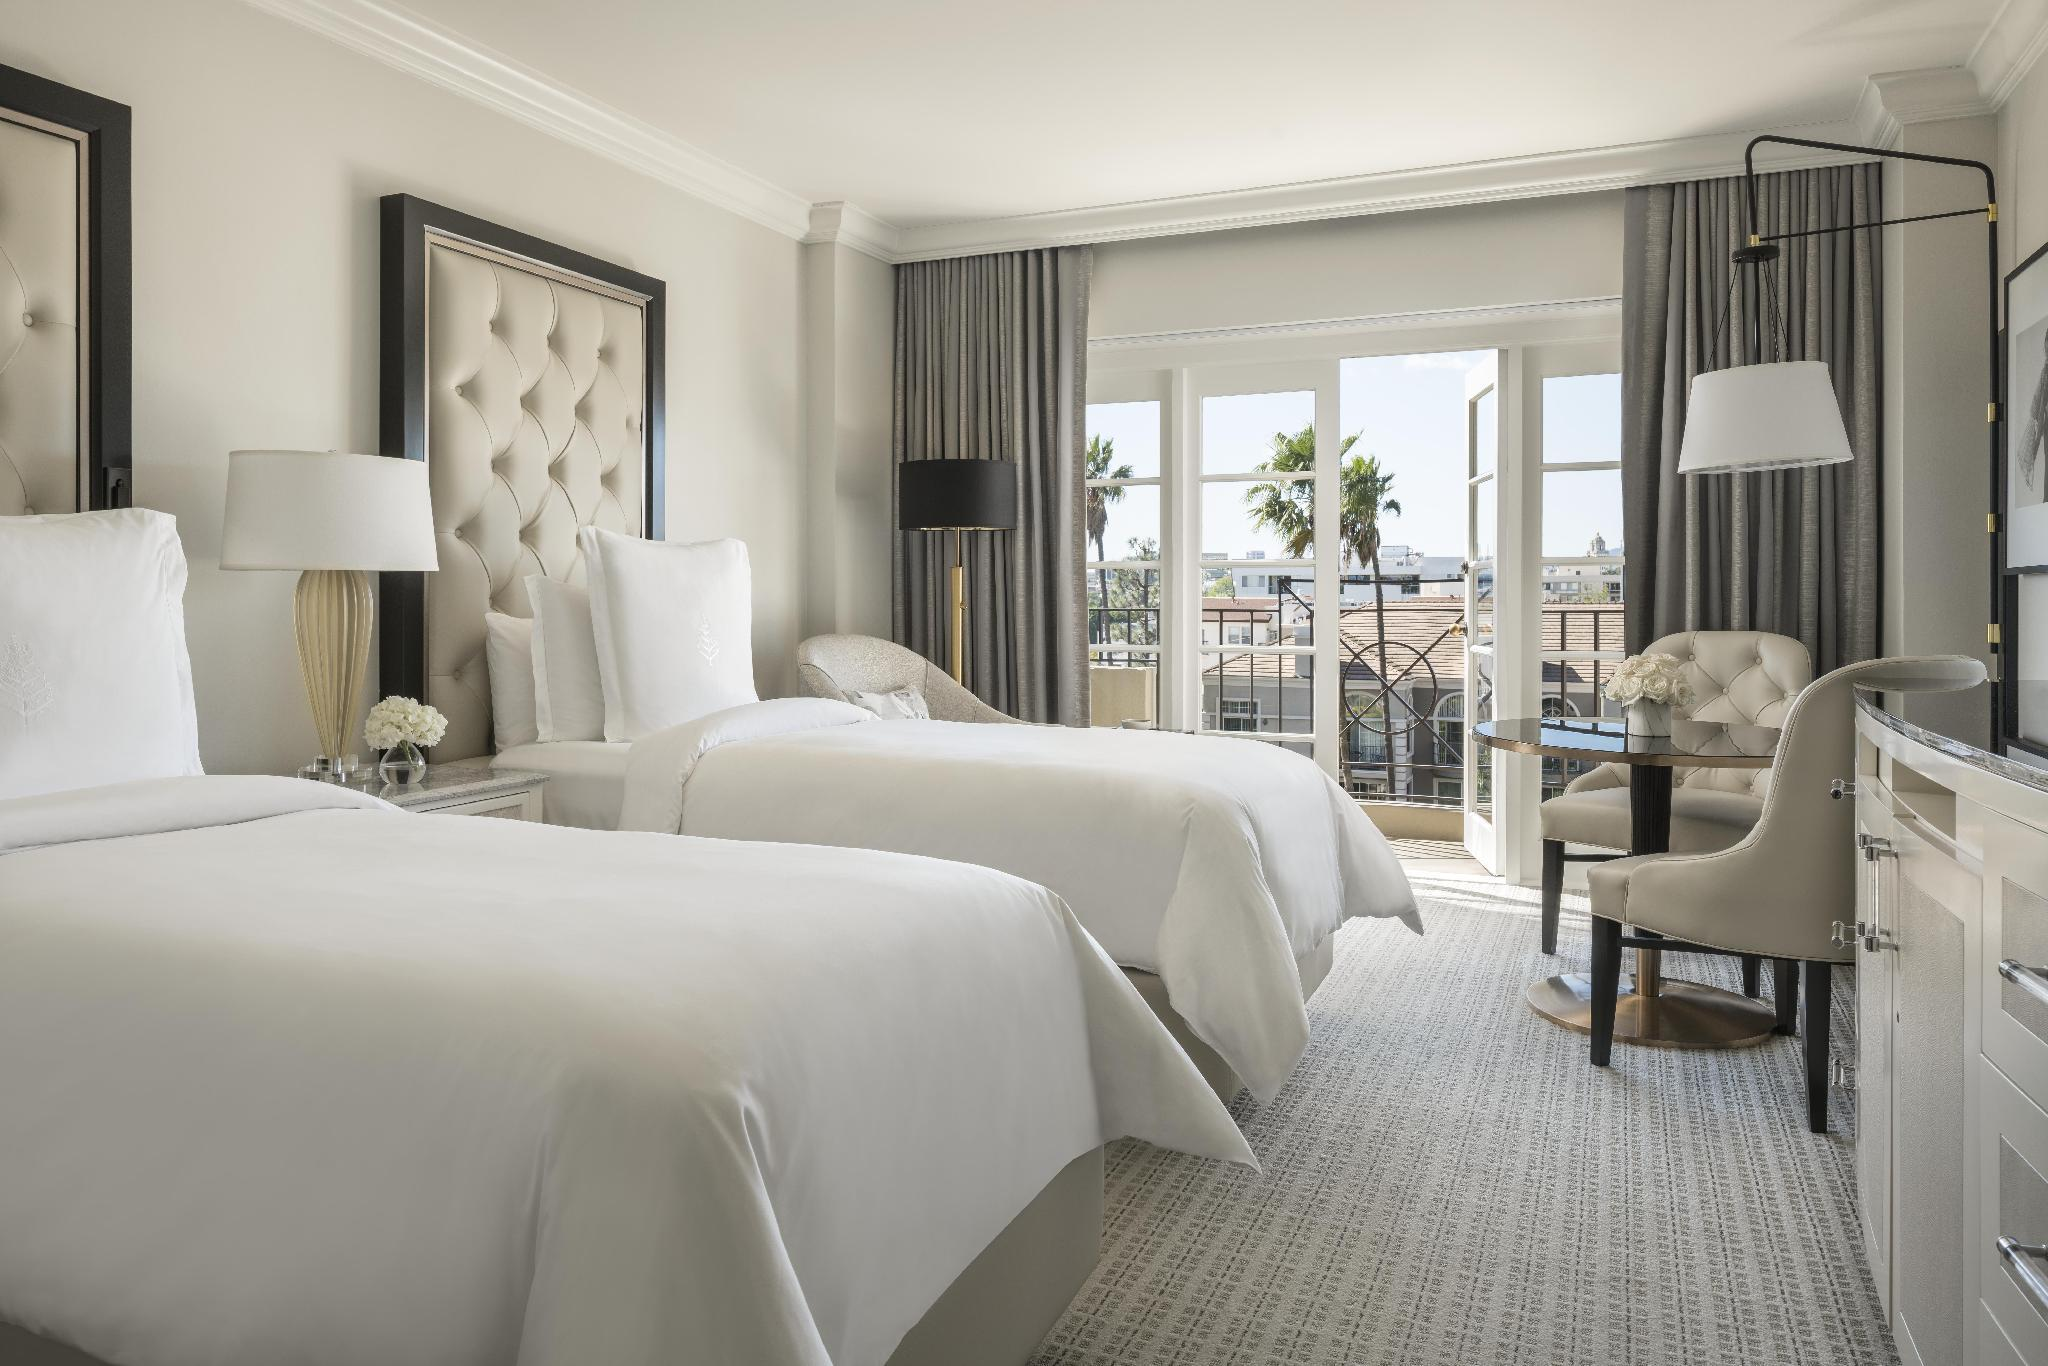 Deluxe Room with 2 Twin Beds and Balcony - Accessible